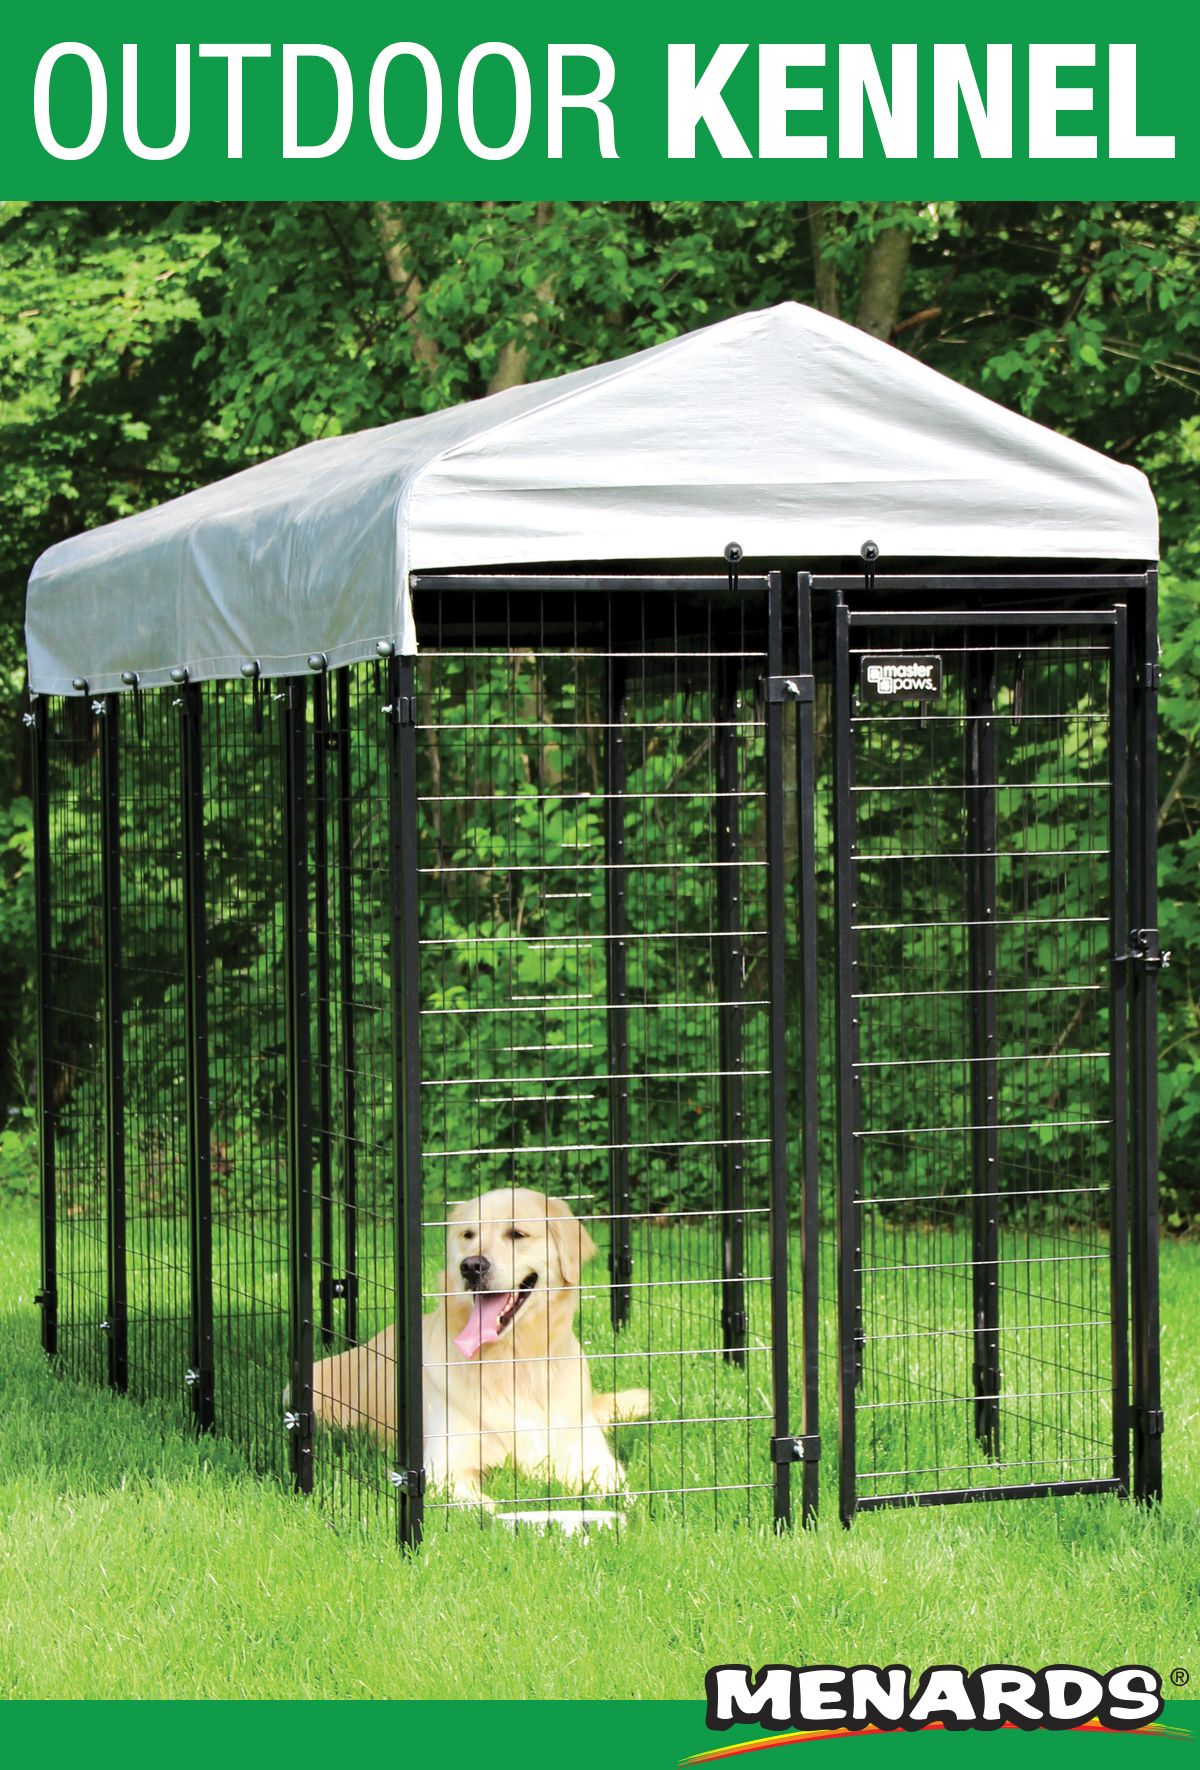 Get A Kennel That S Built To Last With Master Paws It S 6 High X 4 Wide X 8 Deep And Includes A Cover And All The Parts Metal Dog Kennel Dog